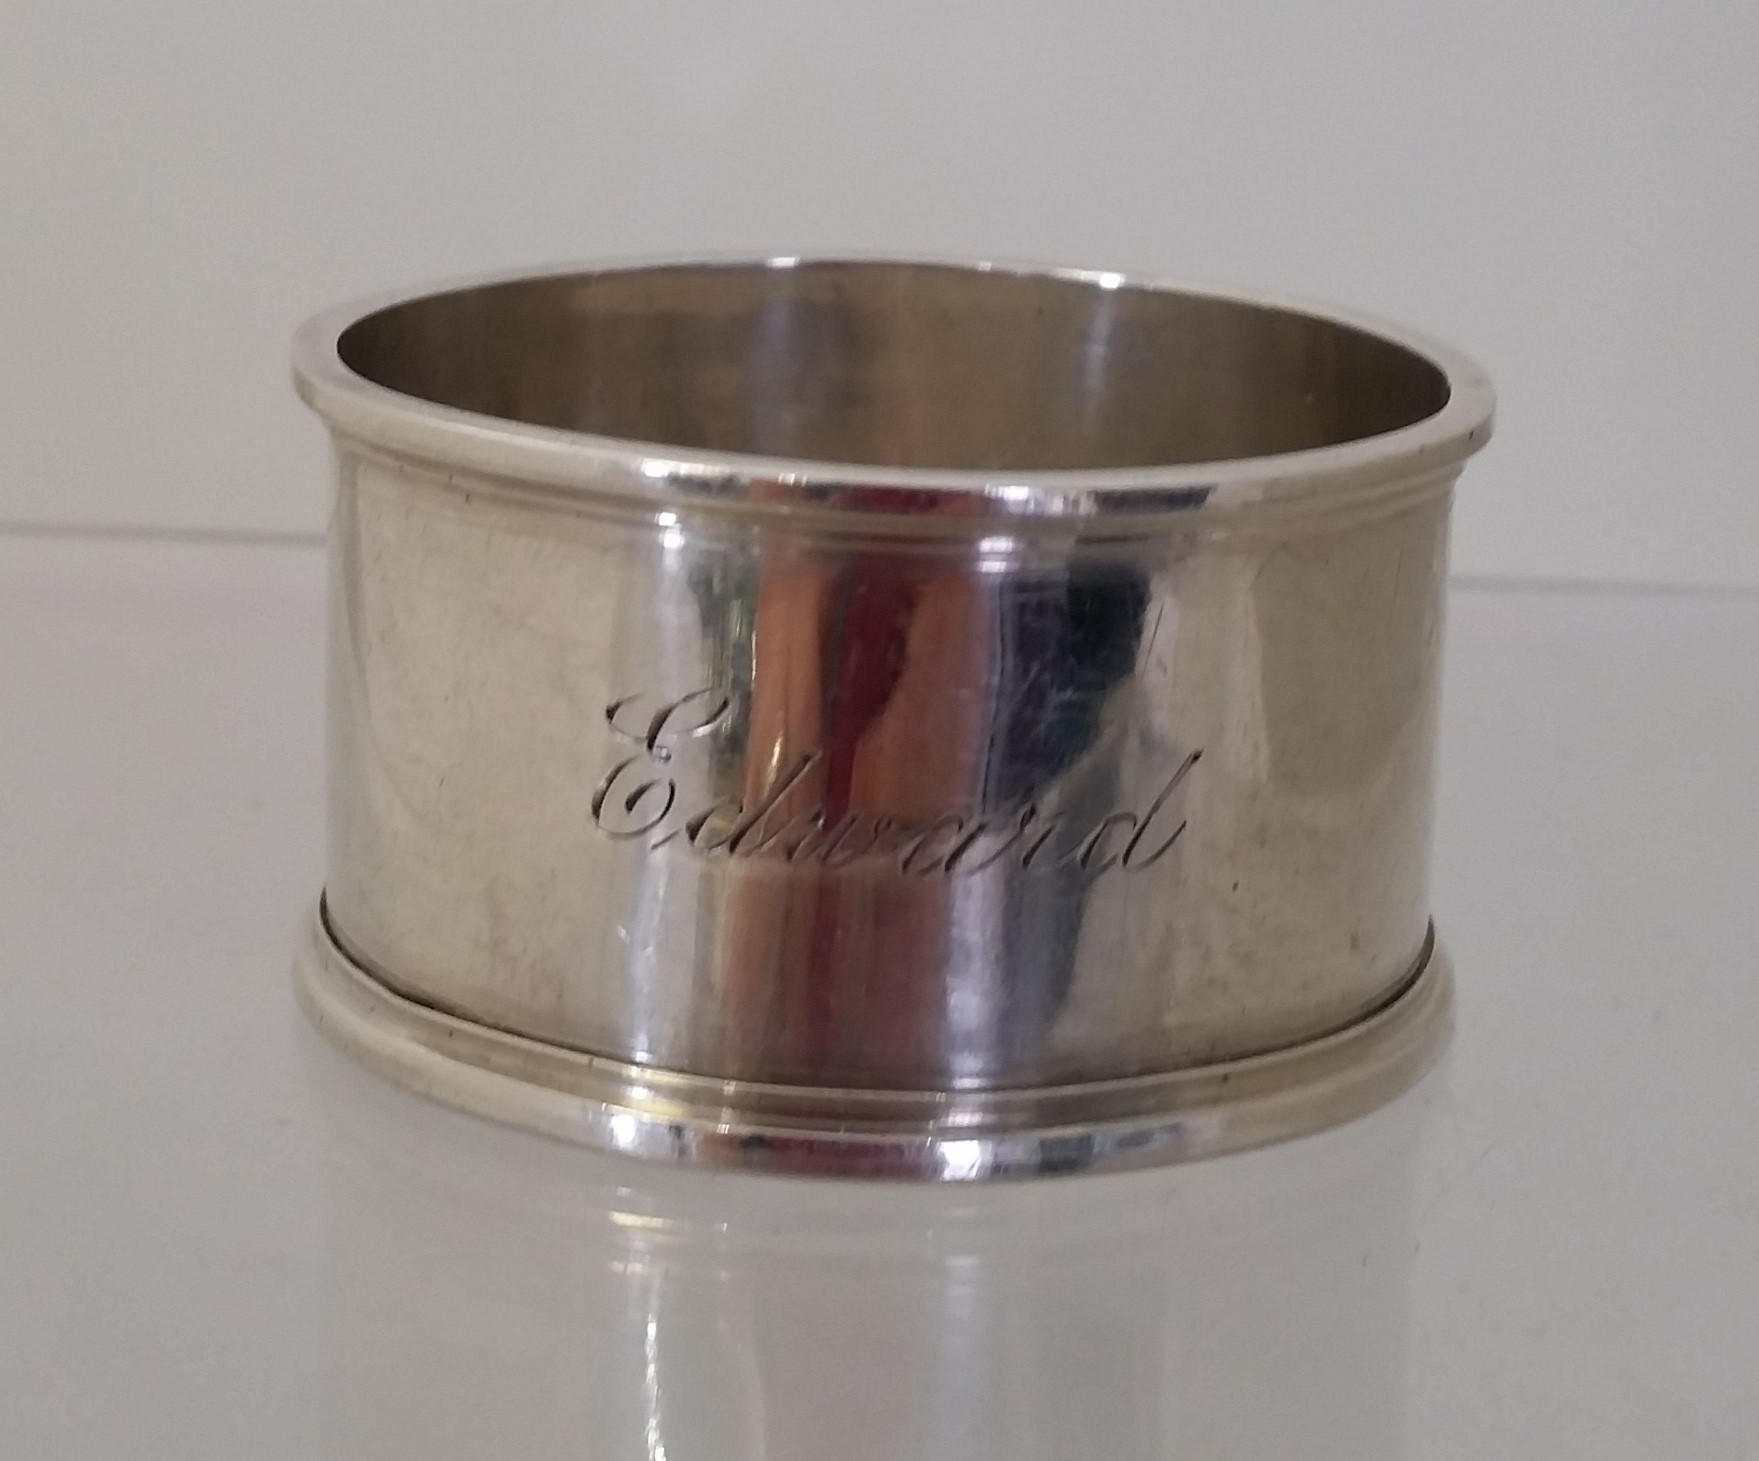 G. H. French & Co. - 'Napkin Ring' - Napkin Ring